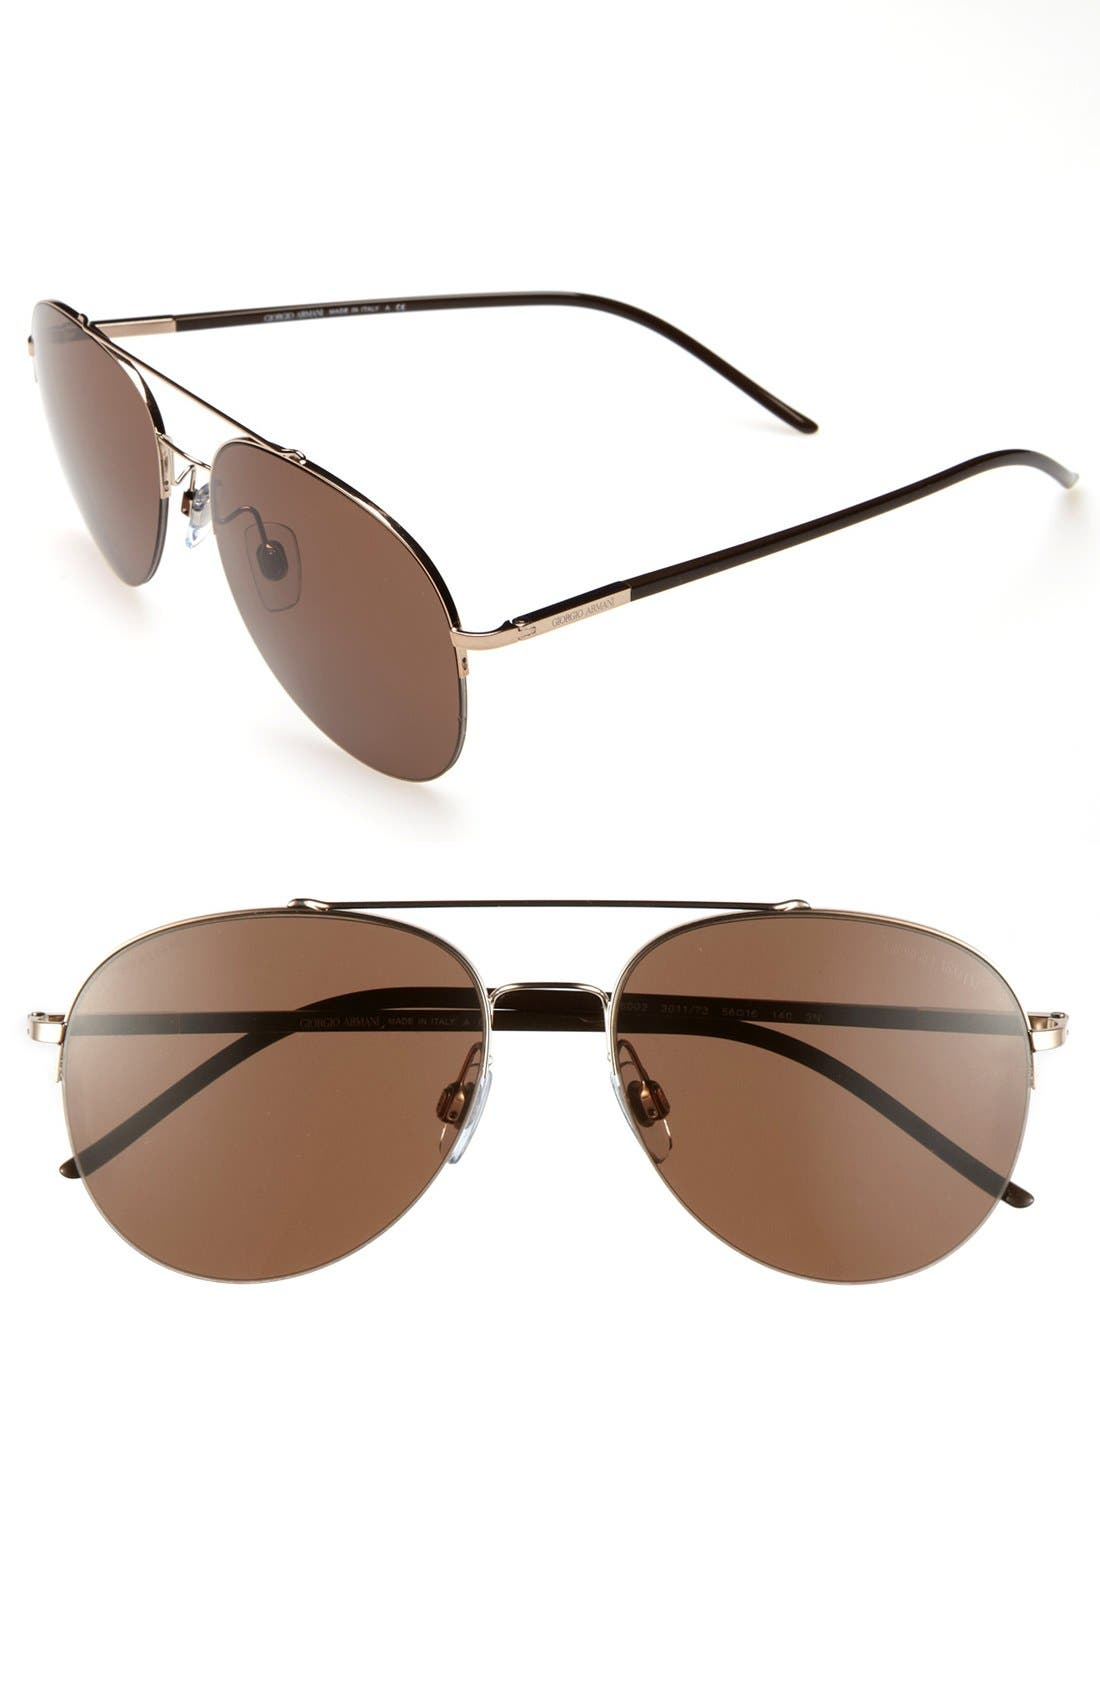 Main Image - Giorgio Armani 56mm Aviator Sunglasses